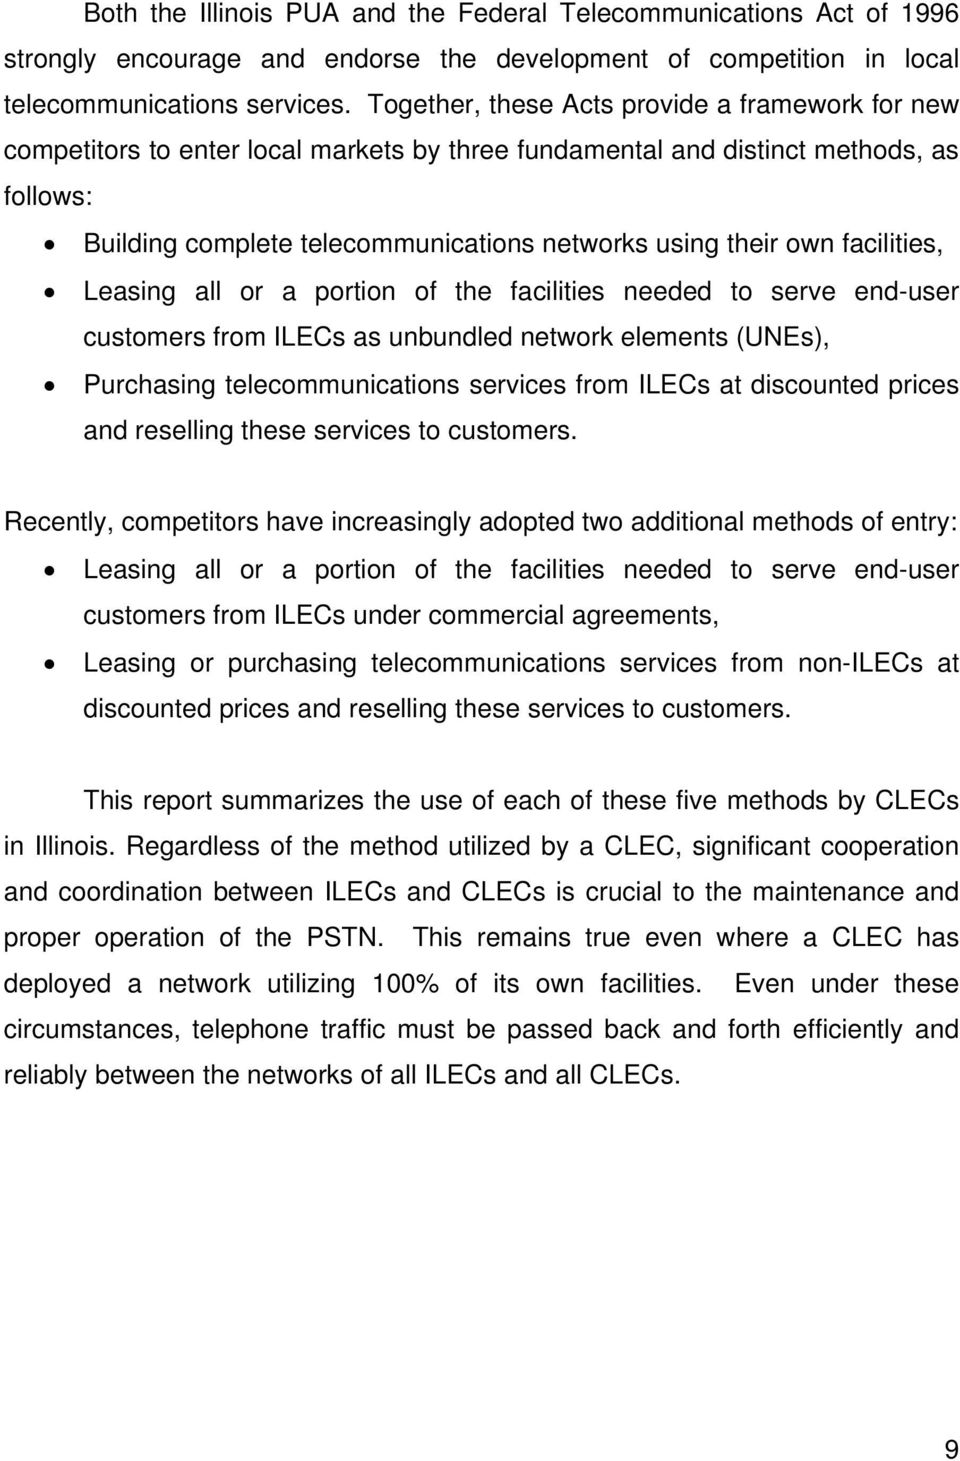 own facilities, Leasing all or a portion of the facilities needed to serve end-user customers from ILECs as unbundled network elements (UNEs), Purchasing telecommunications services from ILECs at